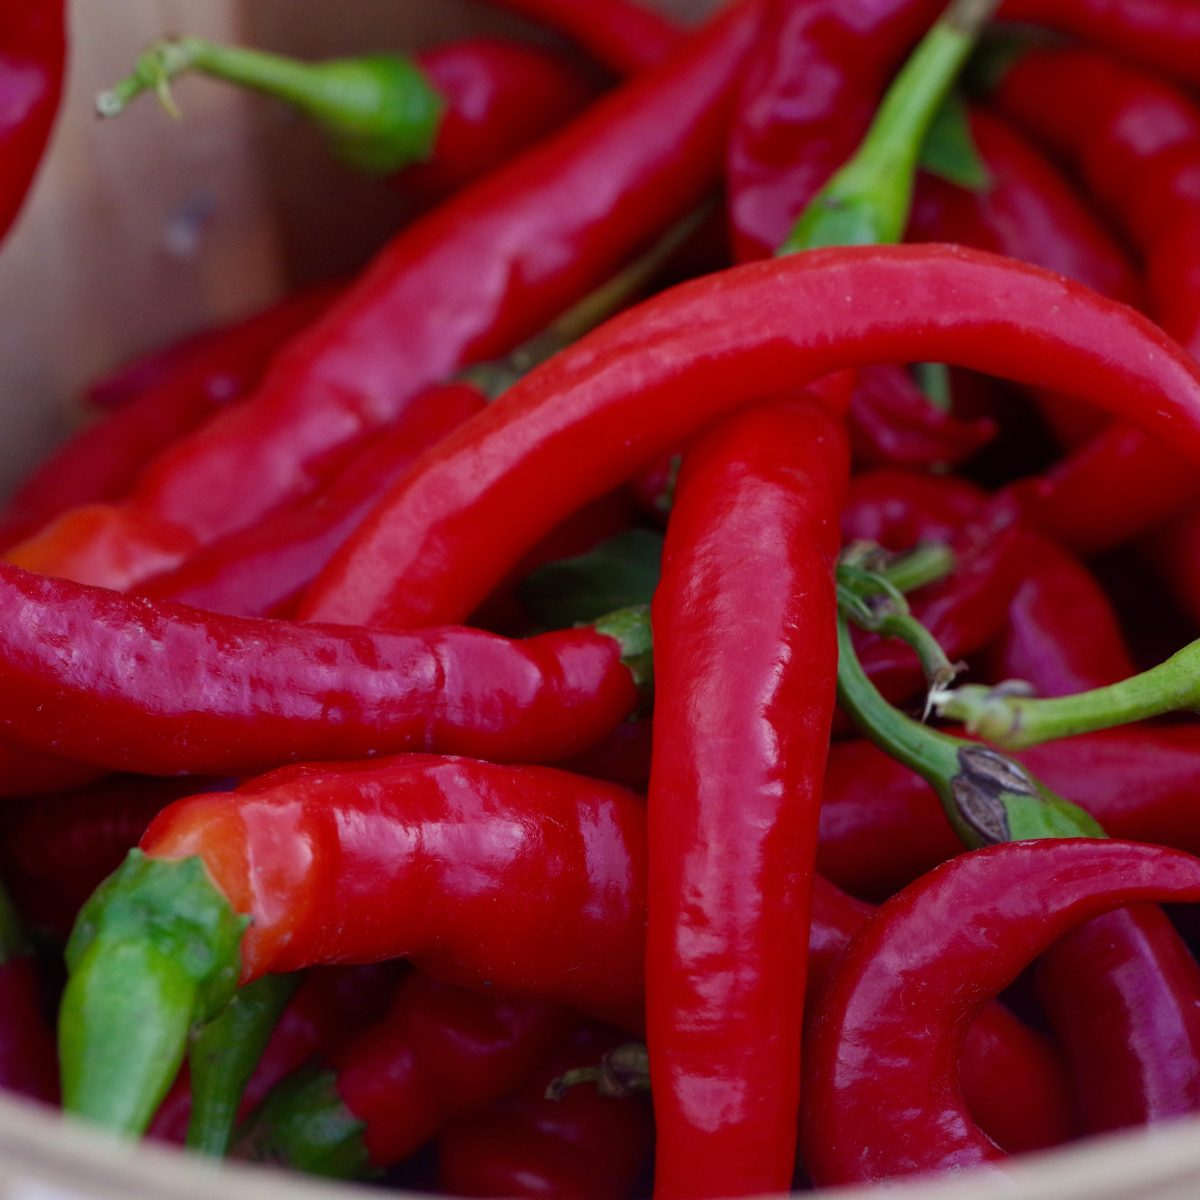 A new study suggests that shoving hot peppers up your ass might be the next health foods